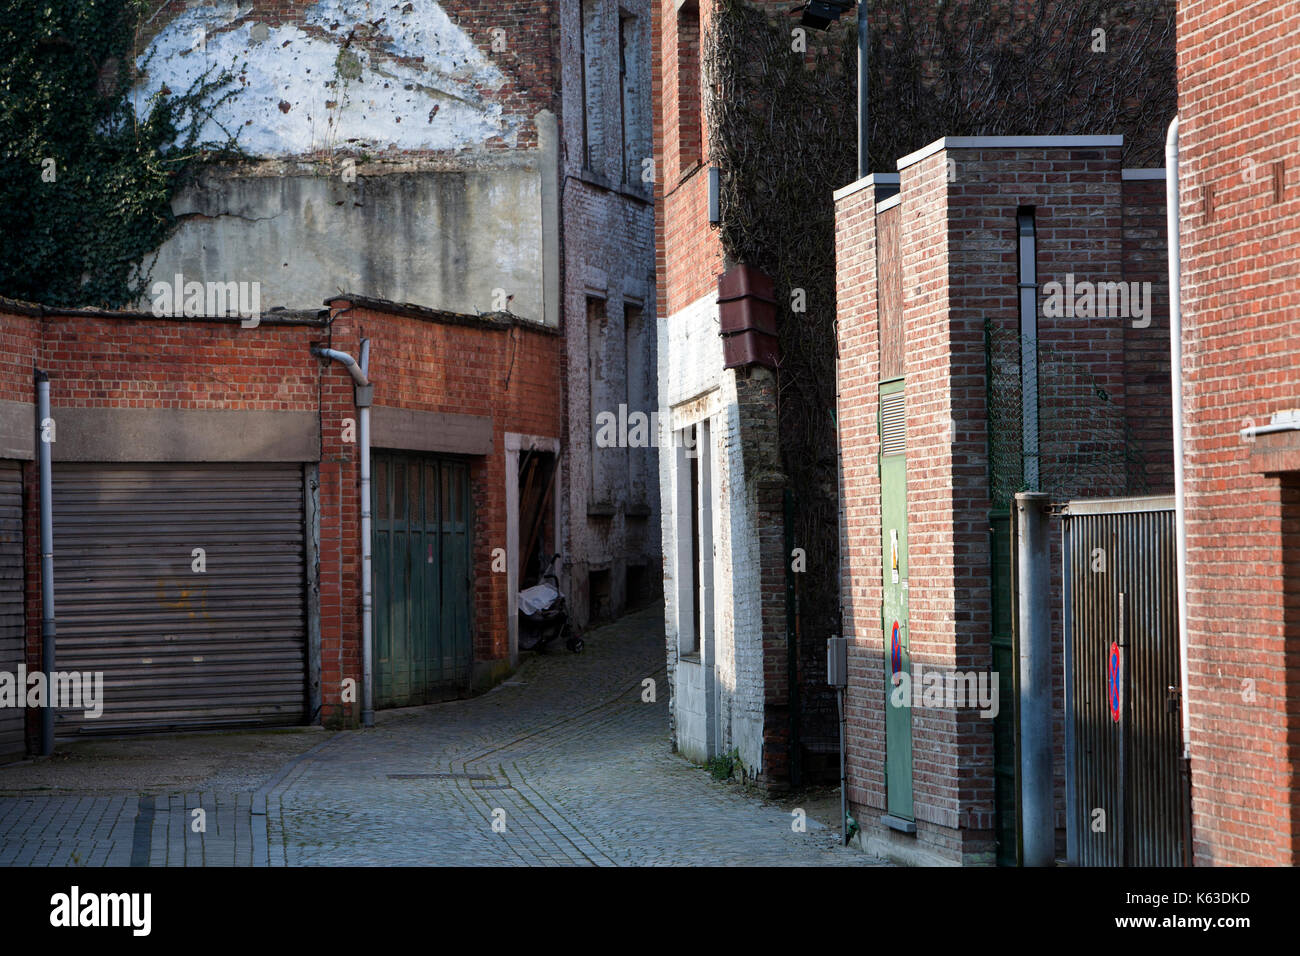 Garage Doors And A Small Dark Alley In A Residential District Of